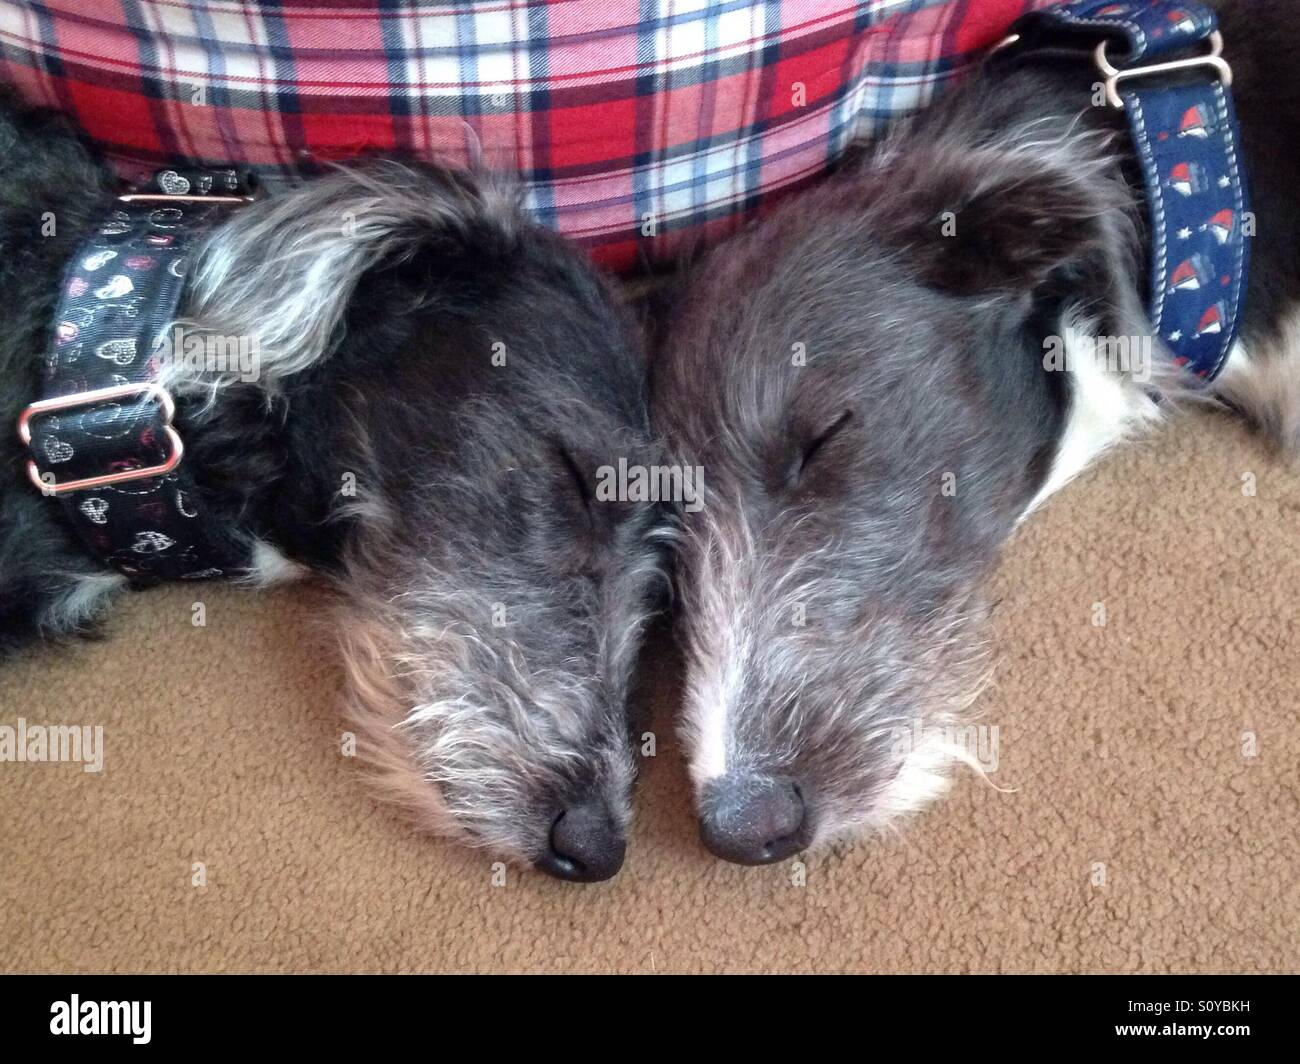 Lurched puppies, puppies, sleeping dogs Stock Photo